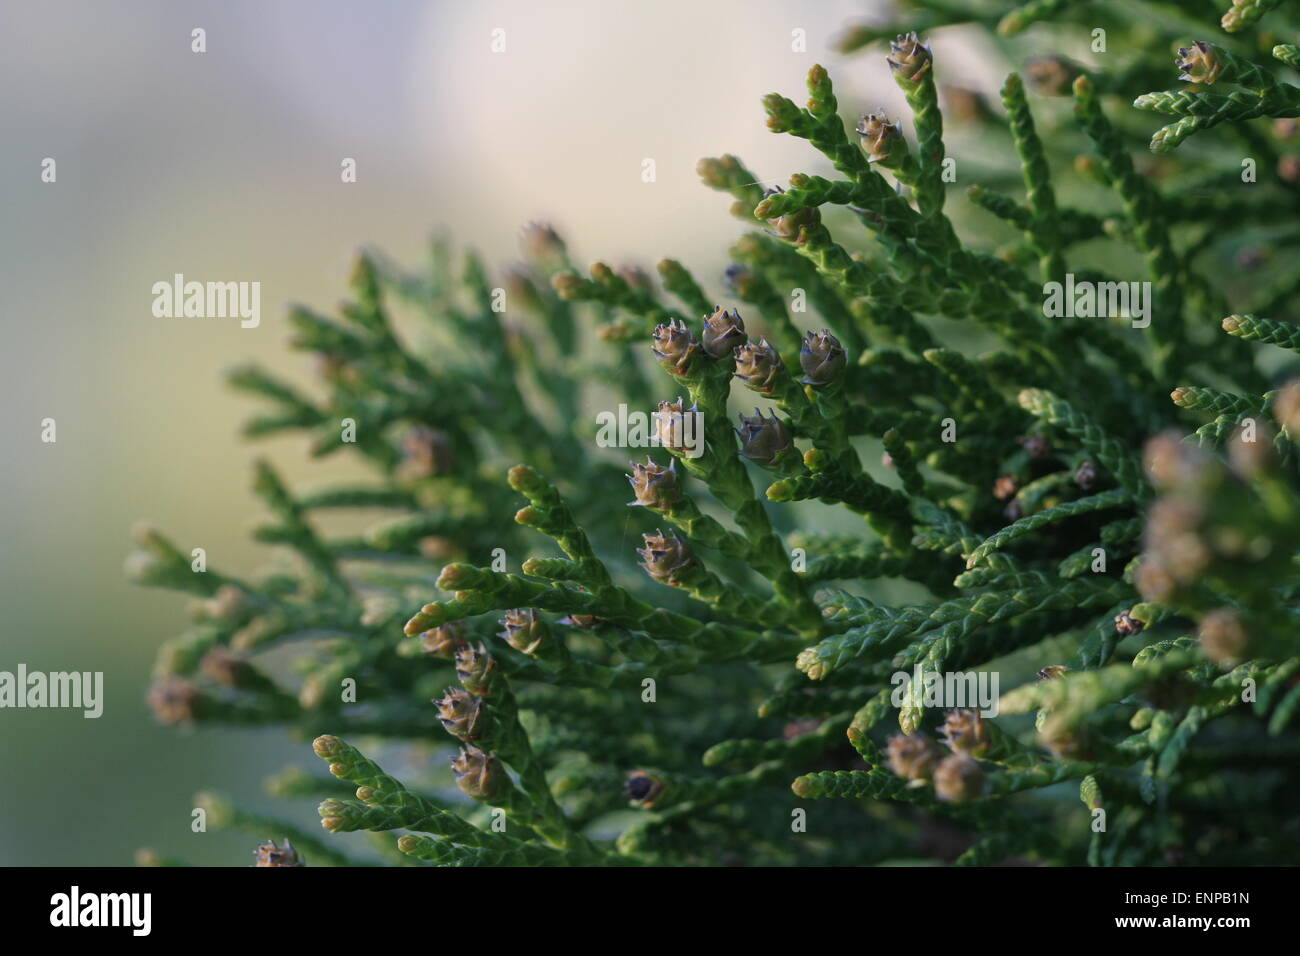 Swelled buds on thuya. Closeup of Thuja twig with soft background - Stock Image